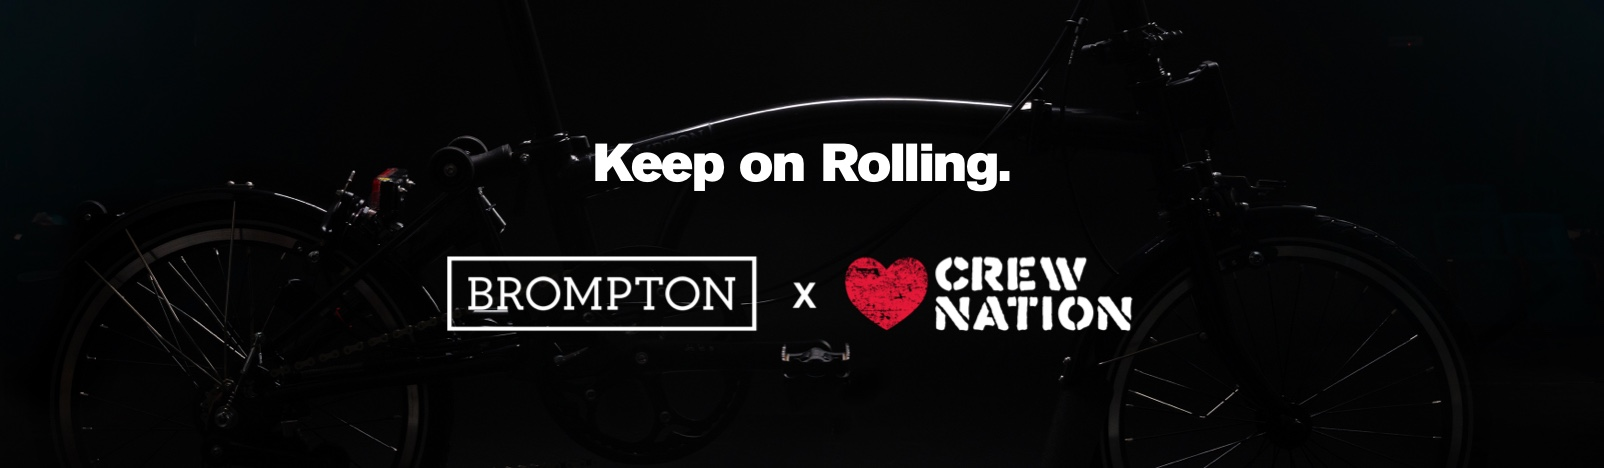 crew nation brompton bicycle